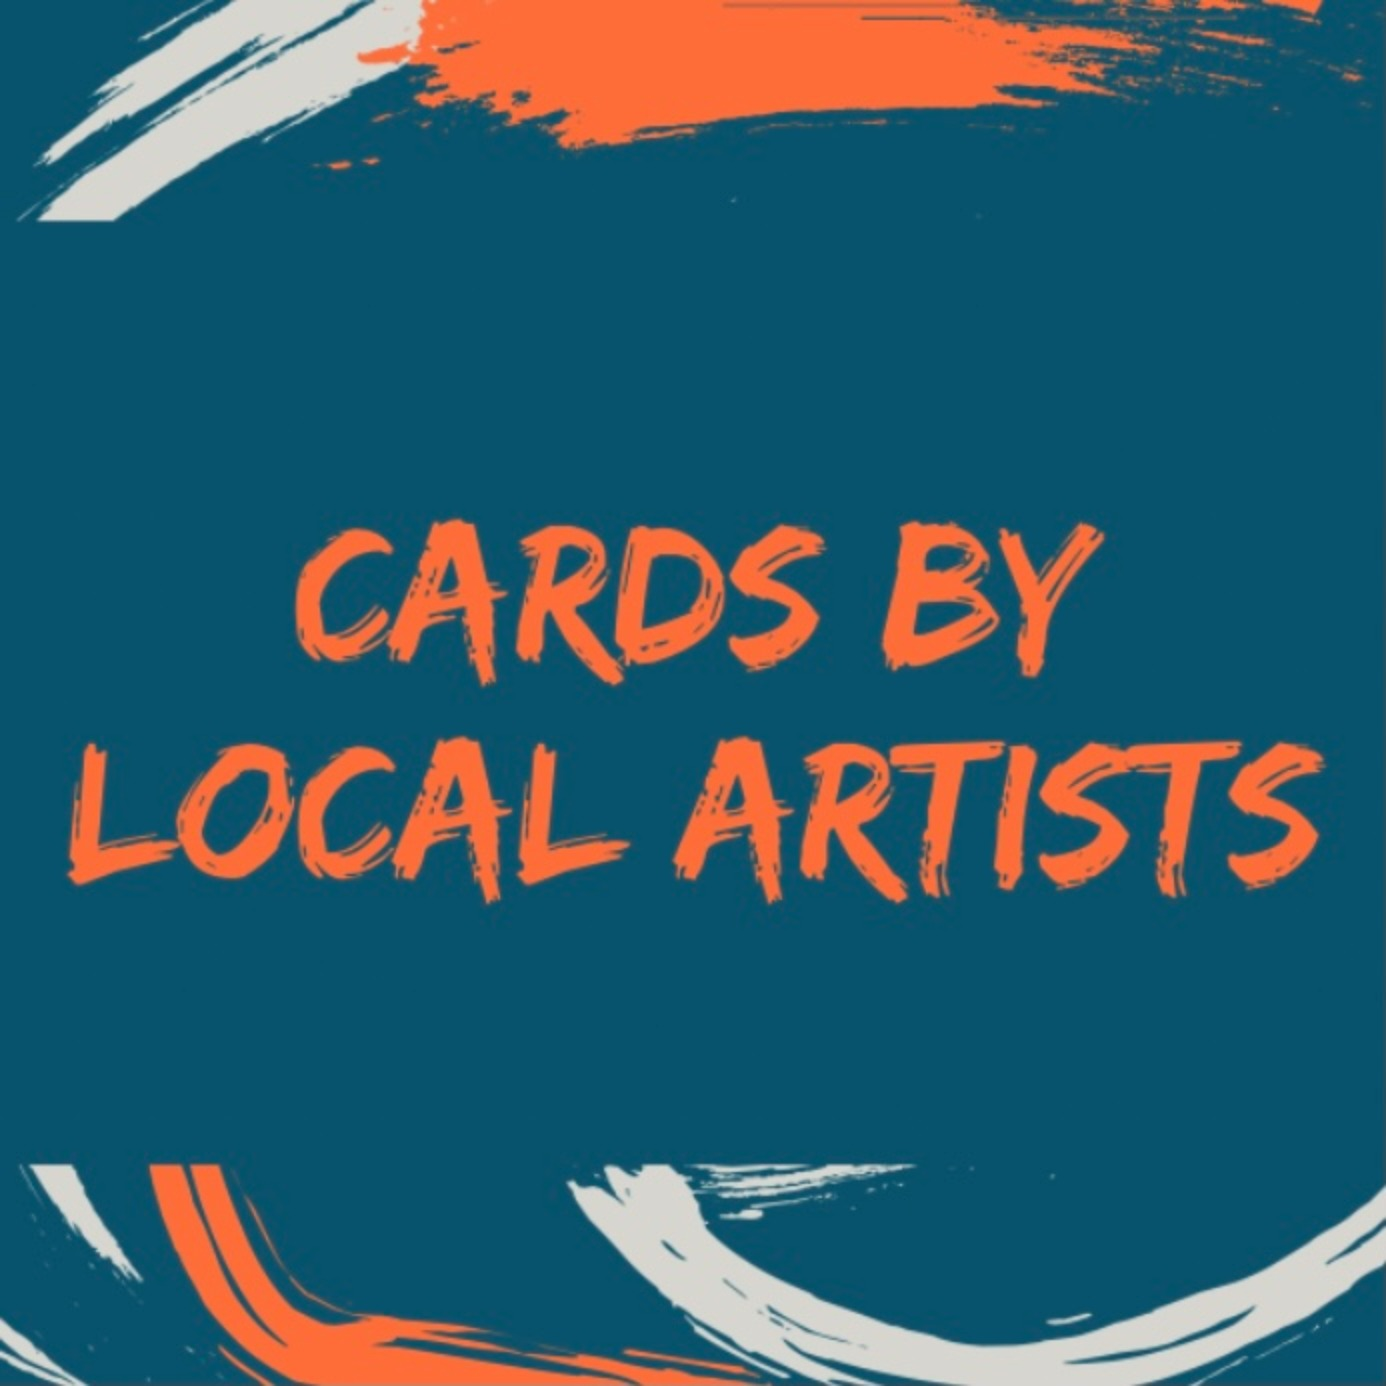 * CARDS BY LOCAL ARTISTS * Blank Cards